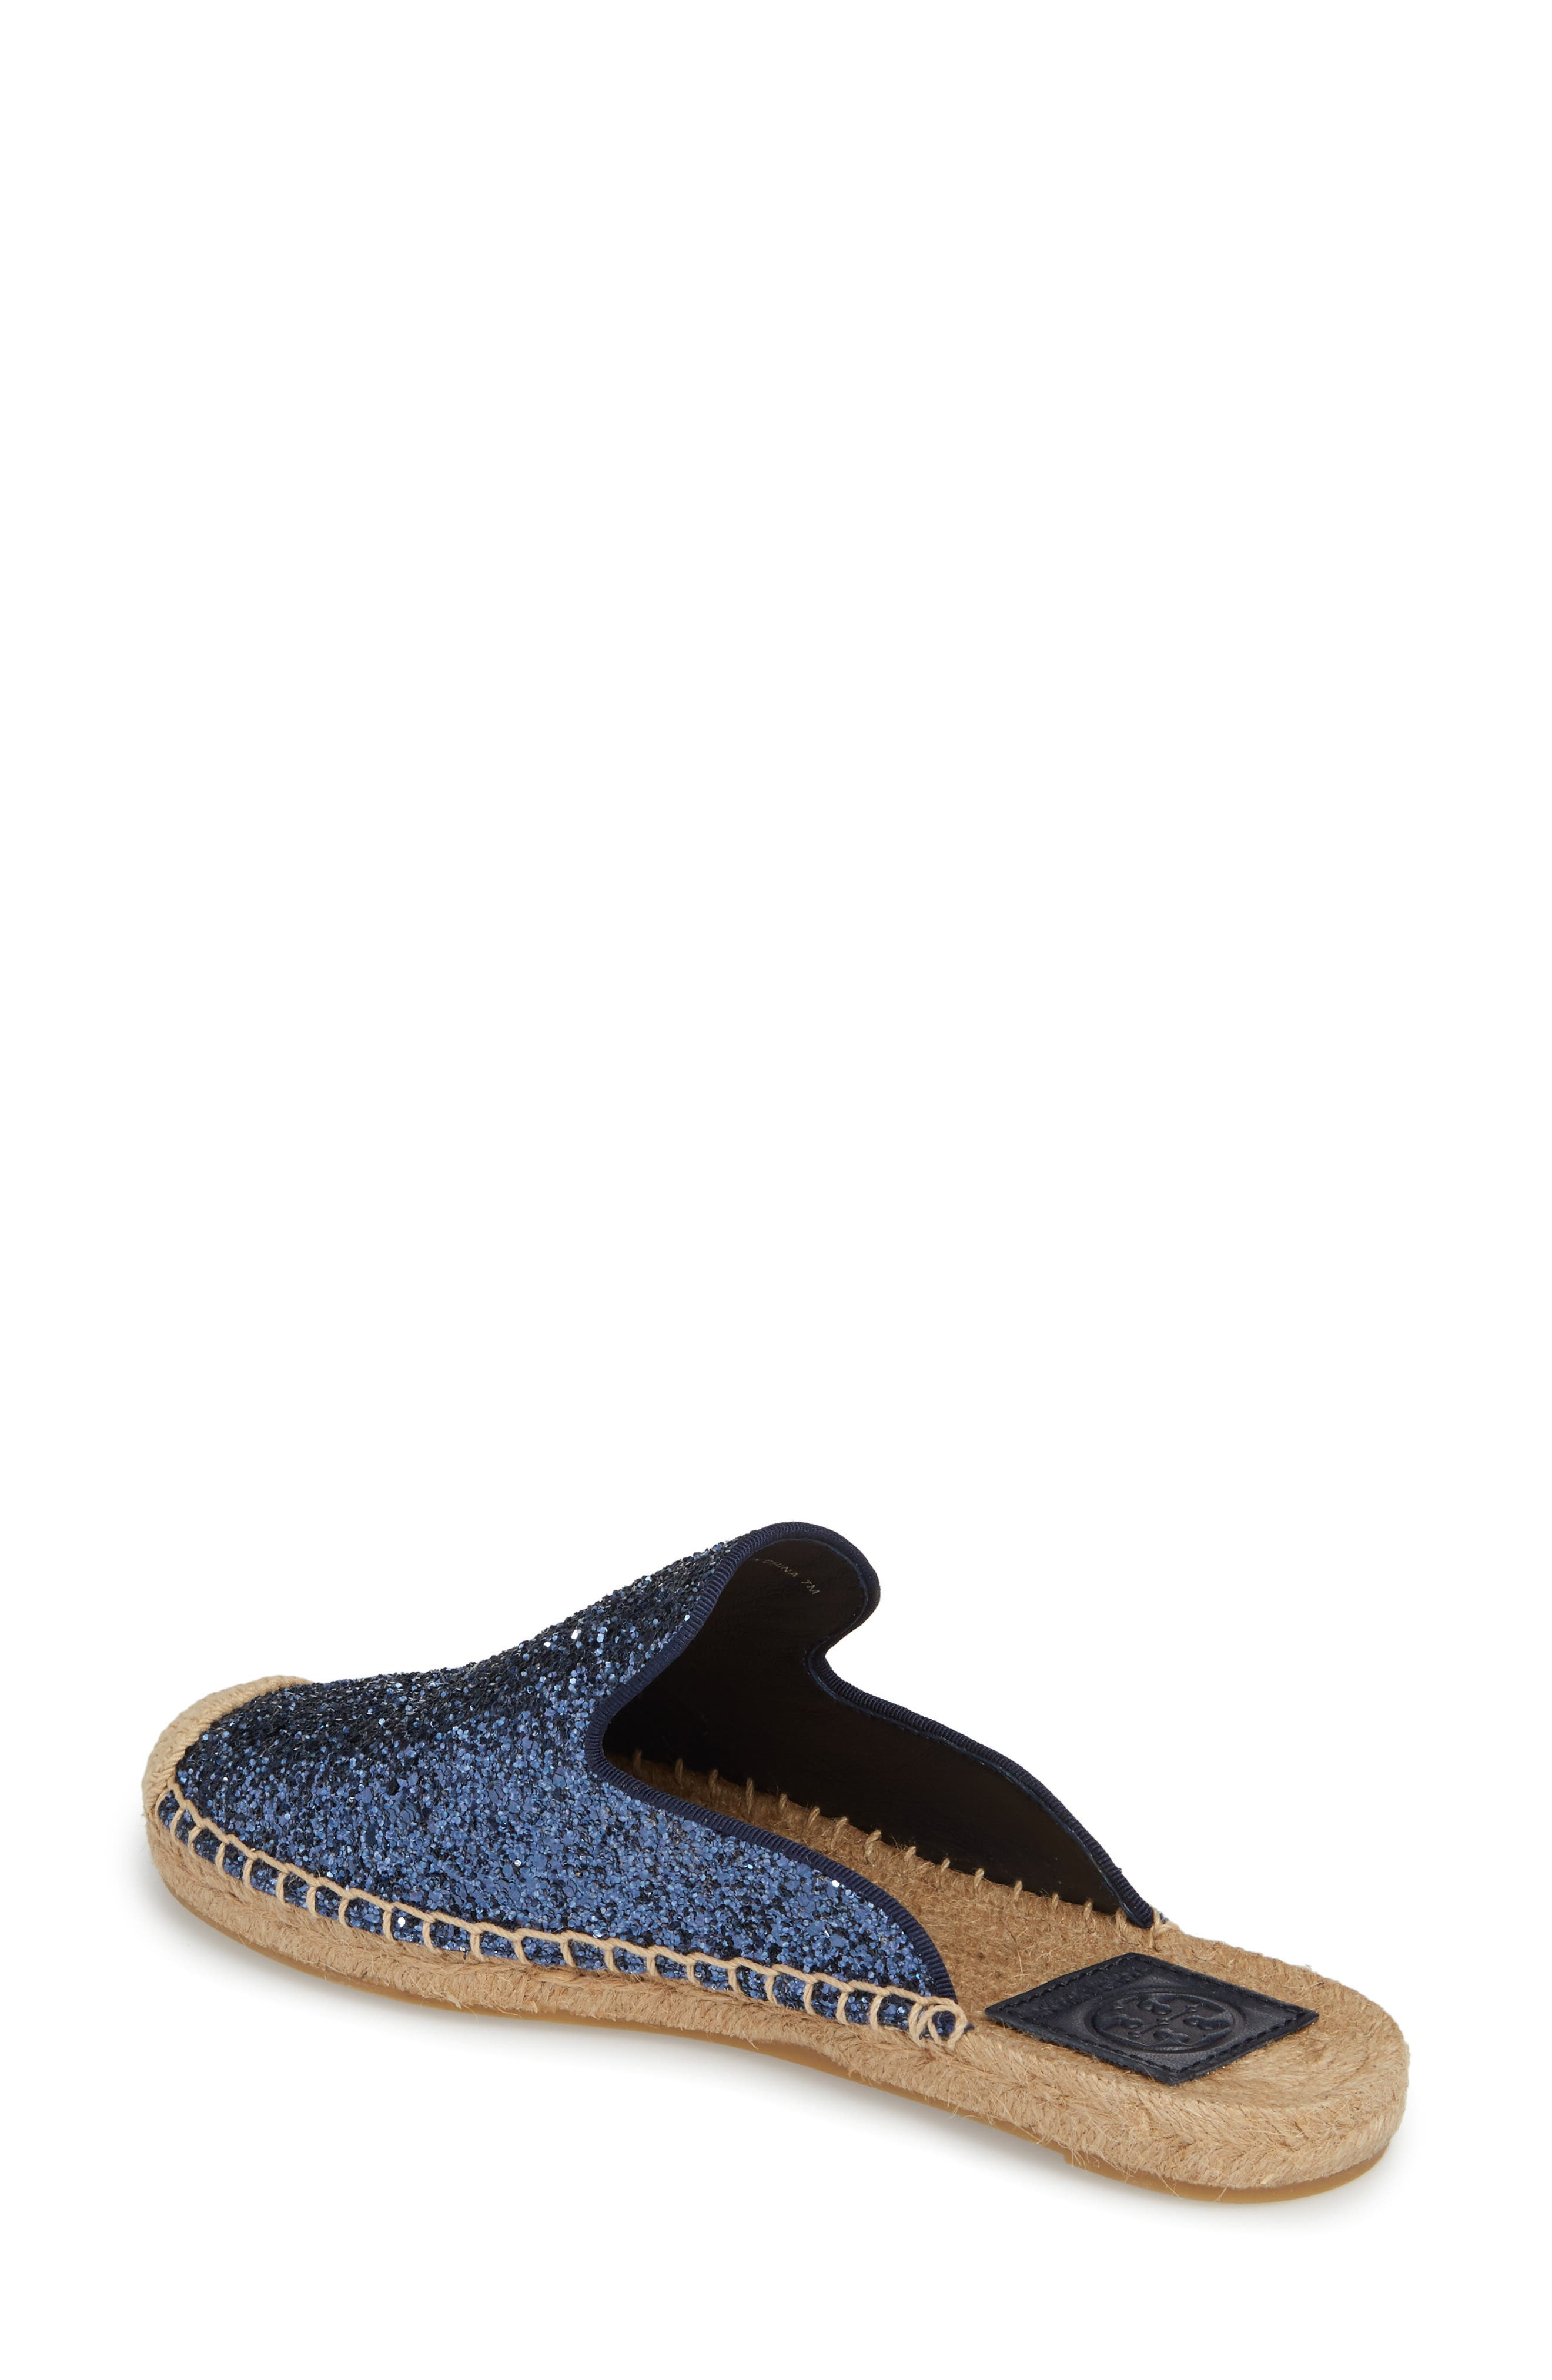 Max Glitter Espadrille Mule,                             Alternate thumbnail 2, color,                             Perfect Navy